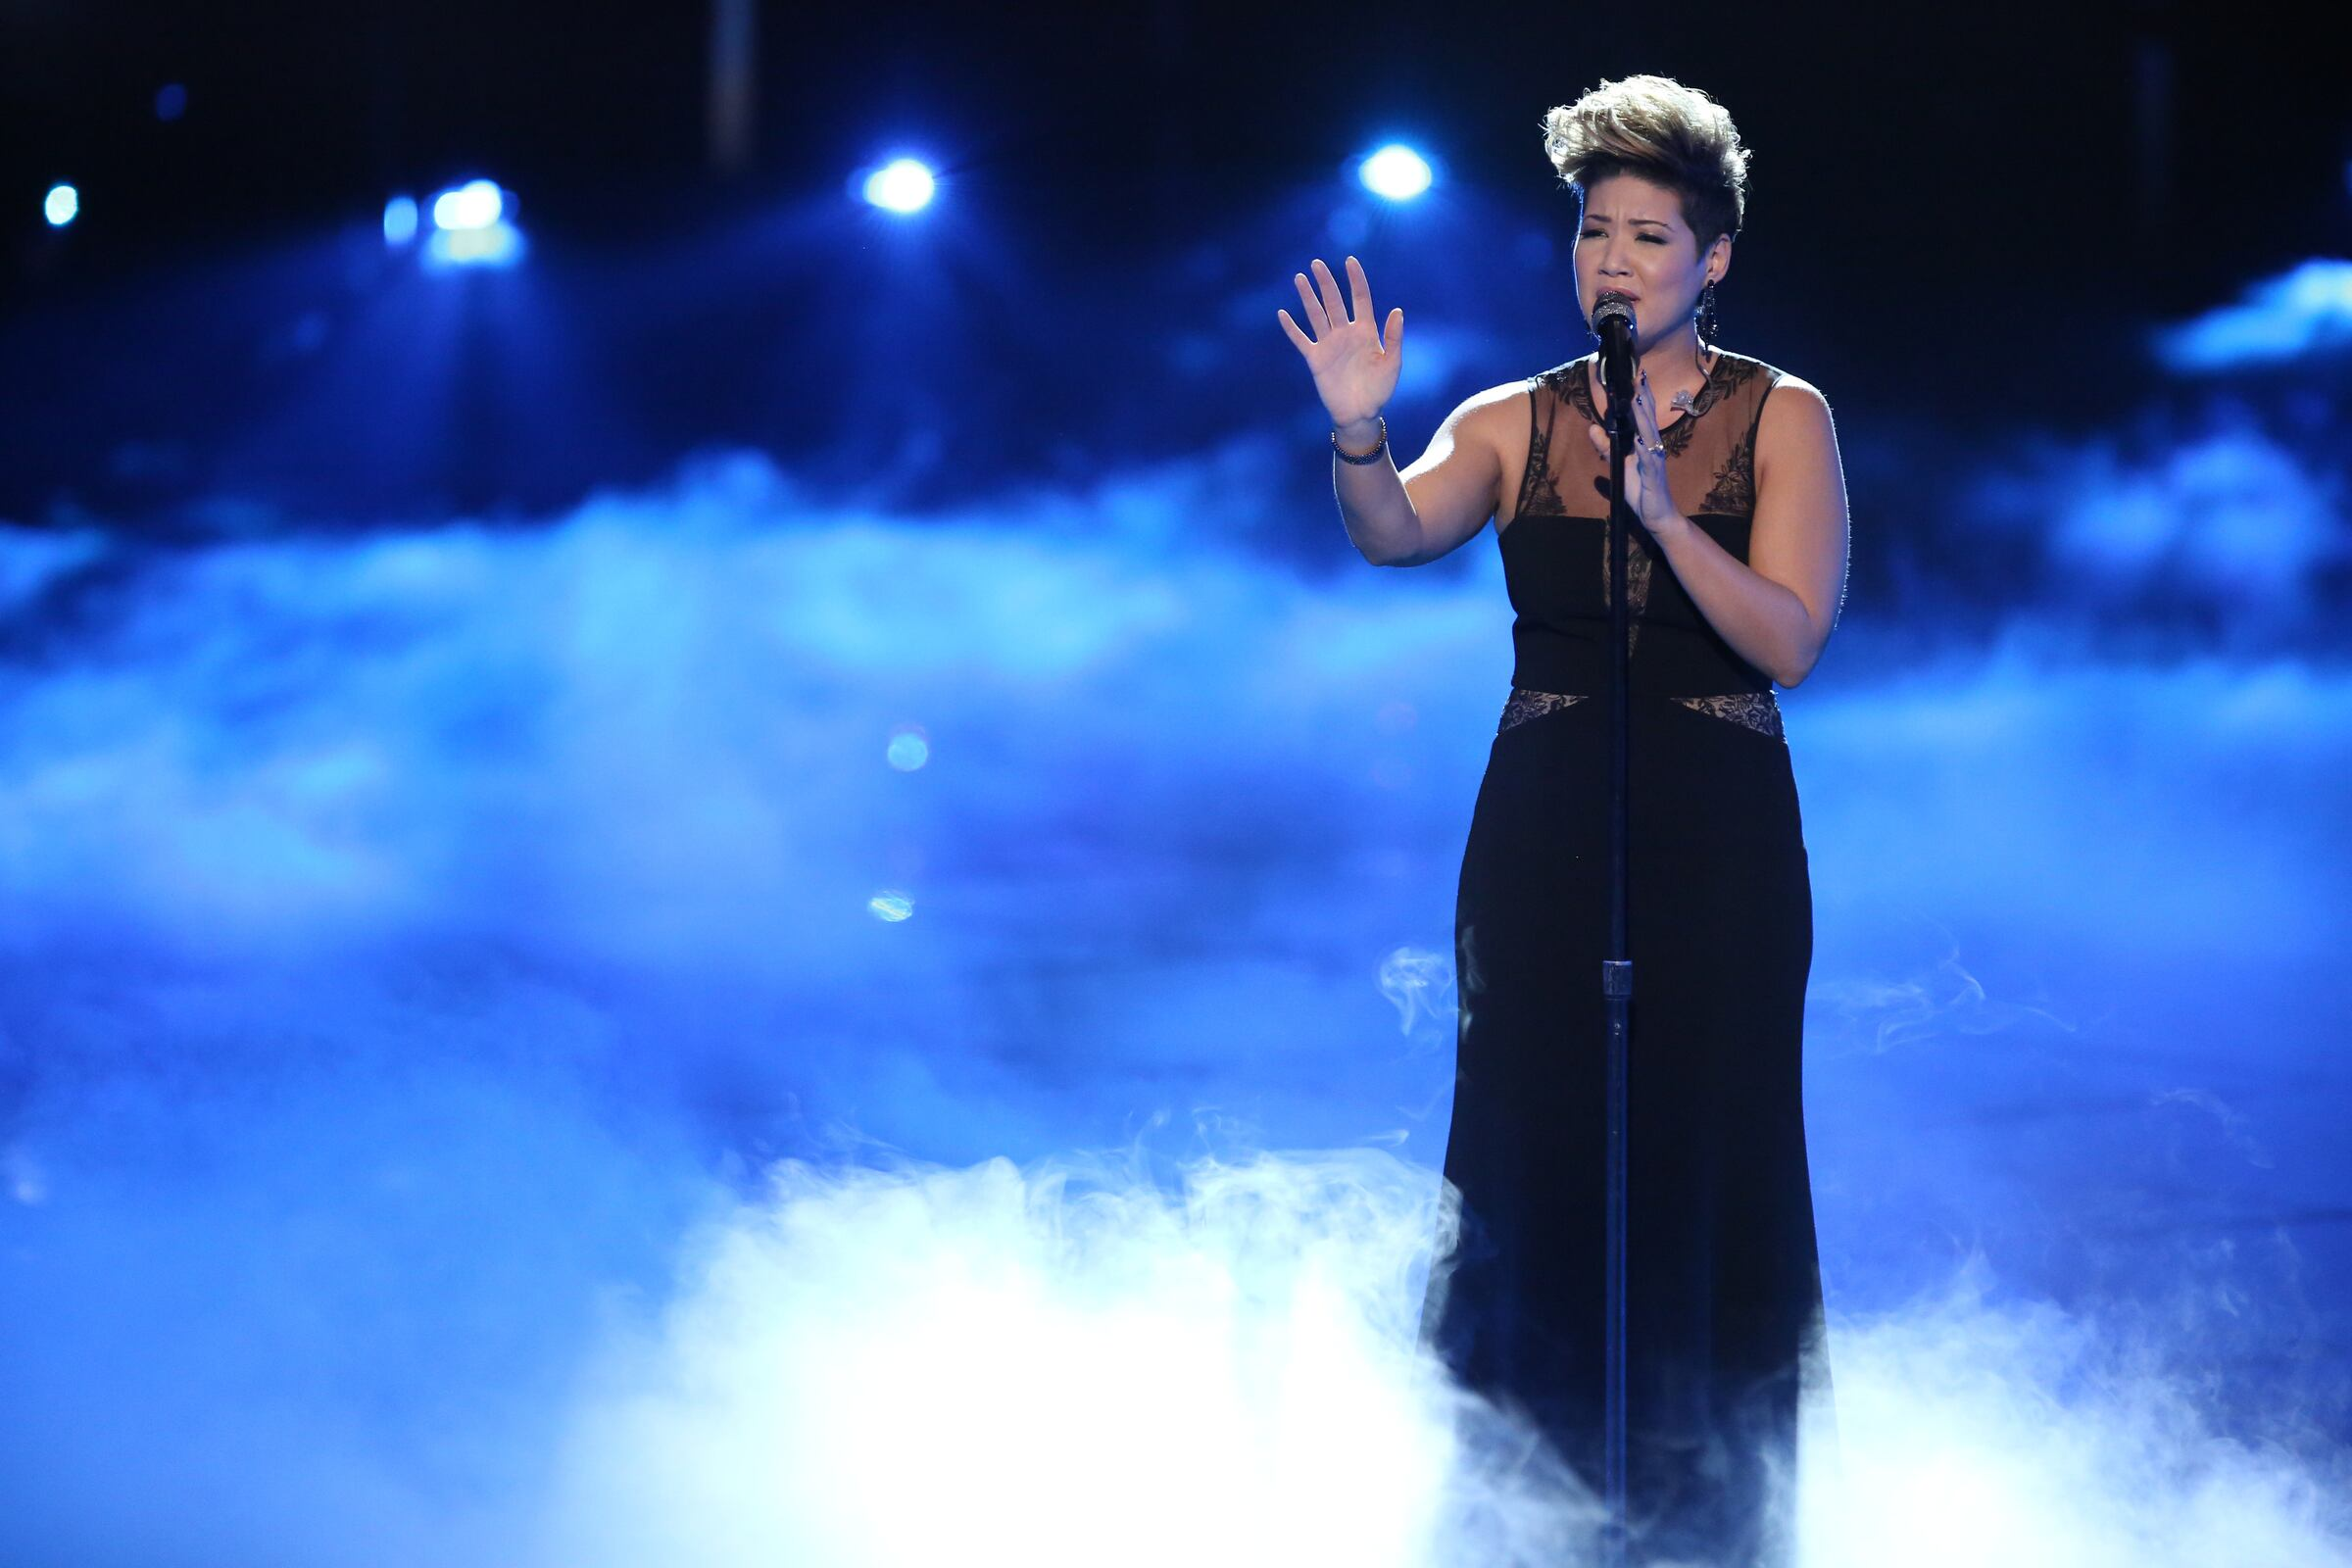 """Then it was on to her solo performance. Surrounded by stage smoke, Tessanne sank her teeth into Simon and Garfunkel's classic """"Bridge Over Troubled Water."""" It was a dramatic performance that easily put her into the finals."""